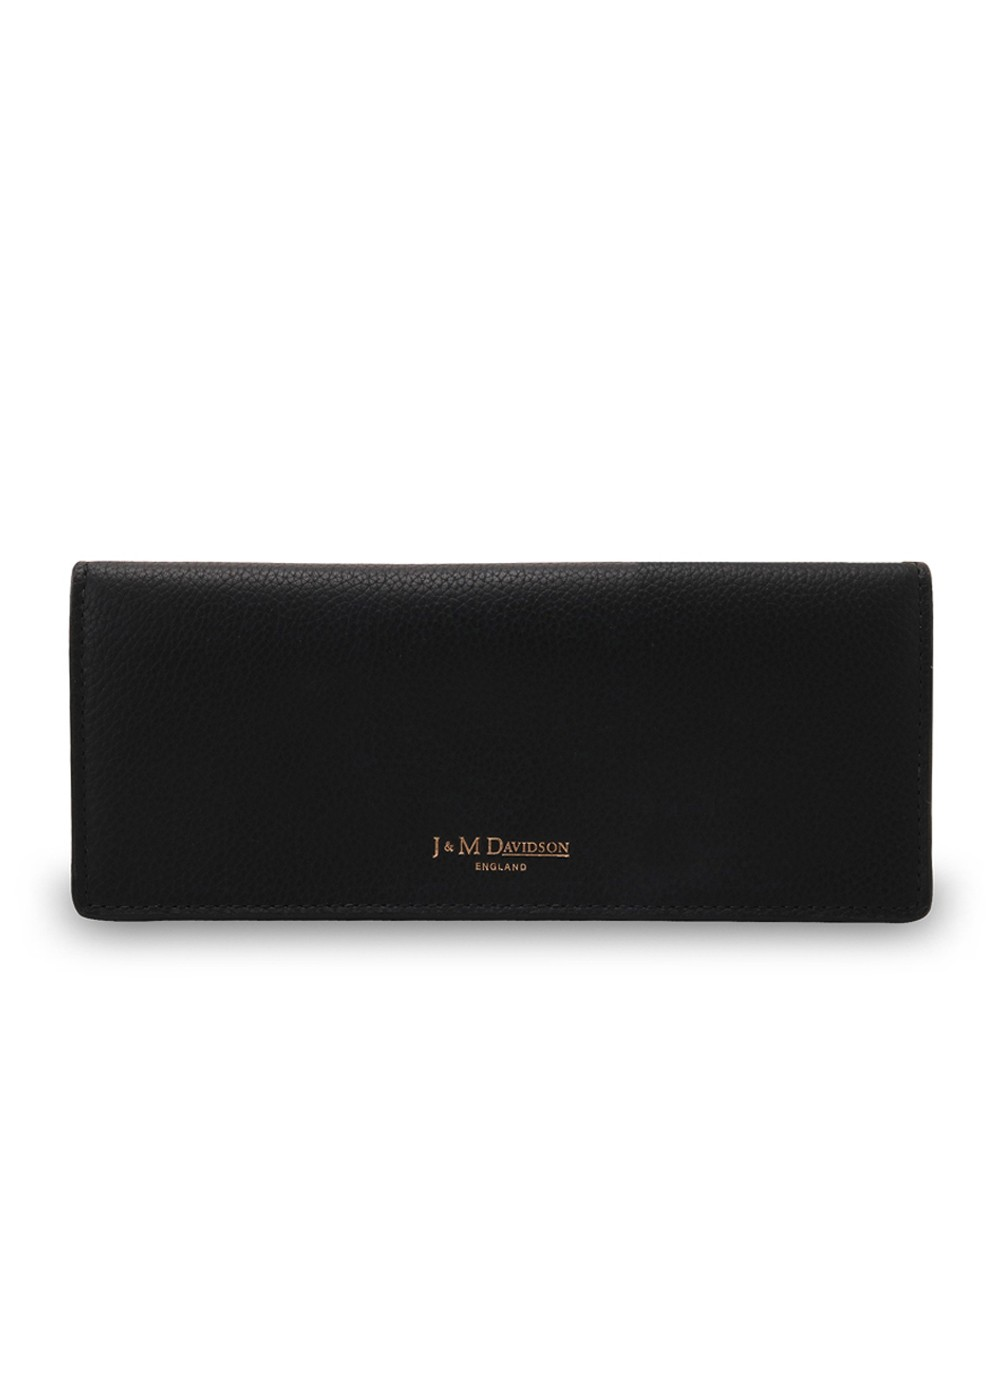 【最大57%OFF】PLAIN FLAP WALLET|Black |レディース財布|J&M DAVIDSON(E)